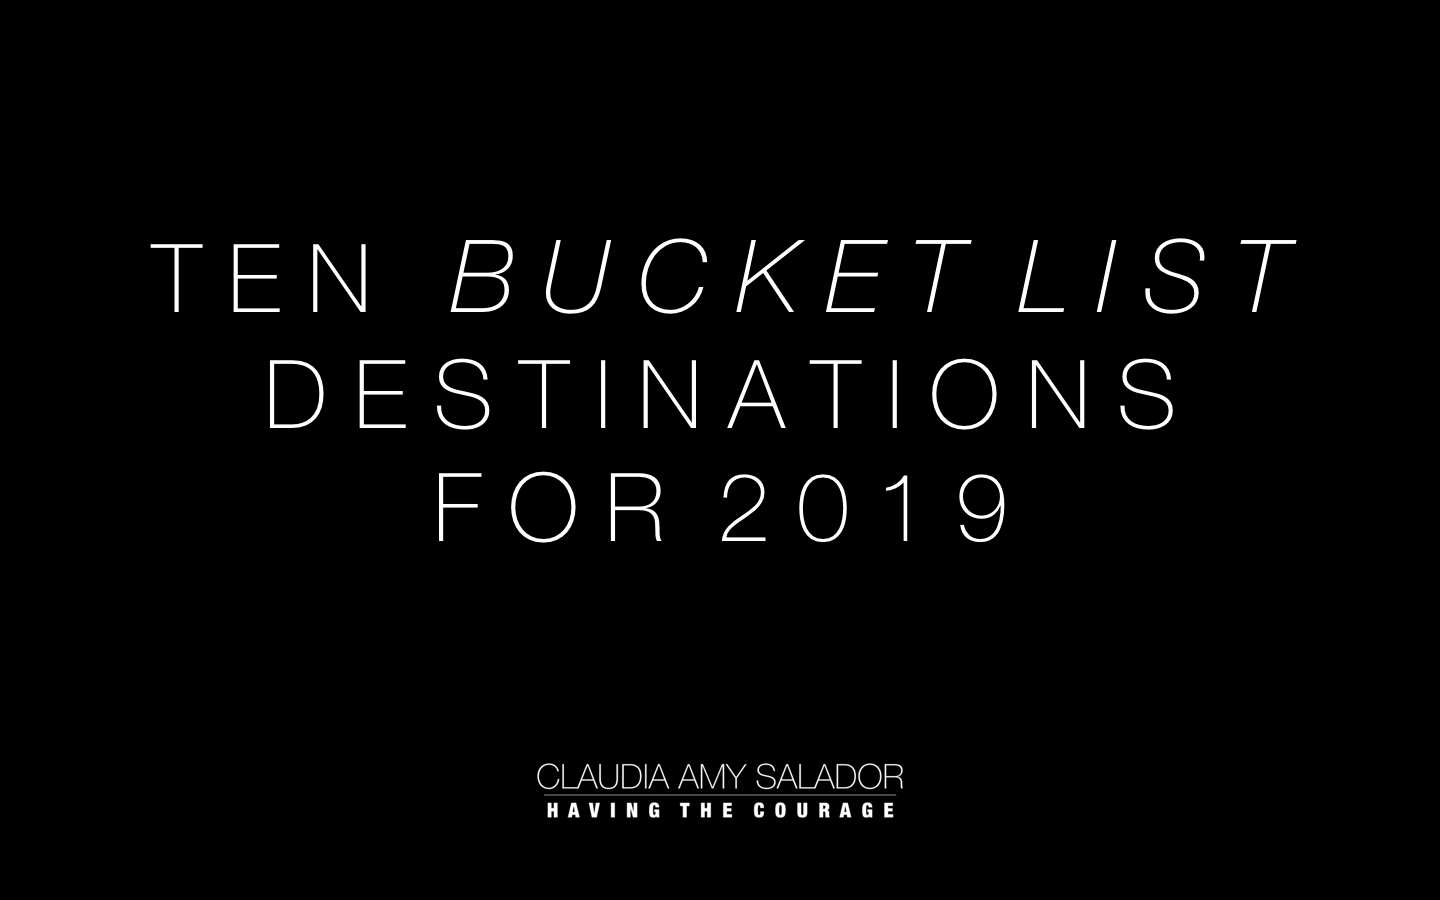 4/3/19    'Ten Bucket List Destinations For 2019'